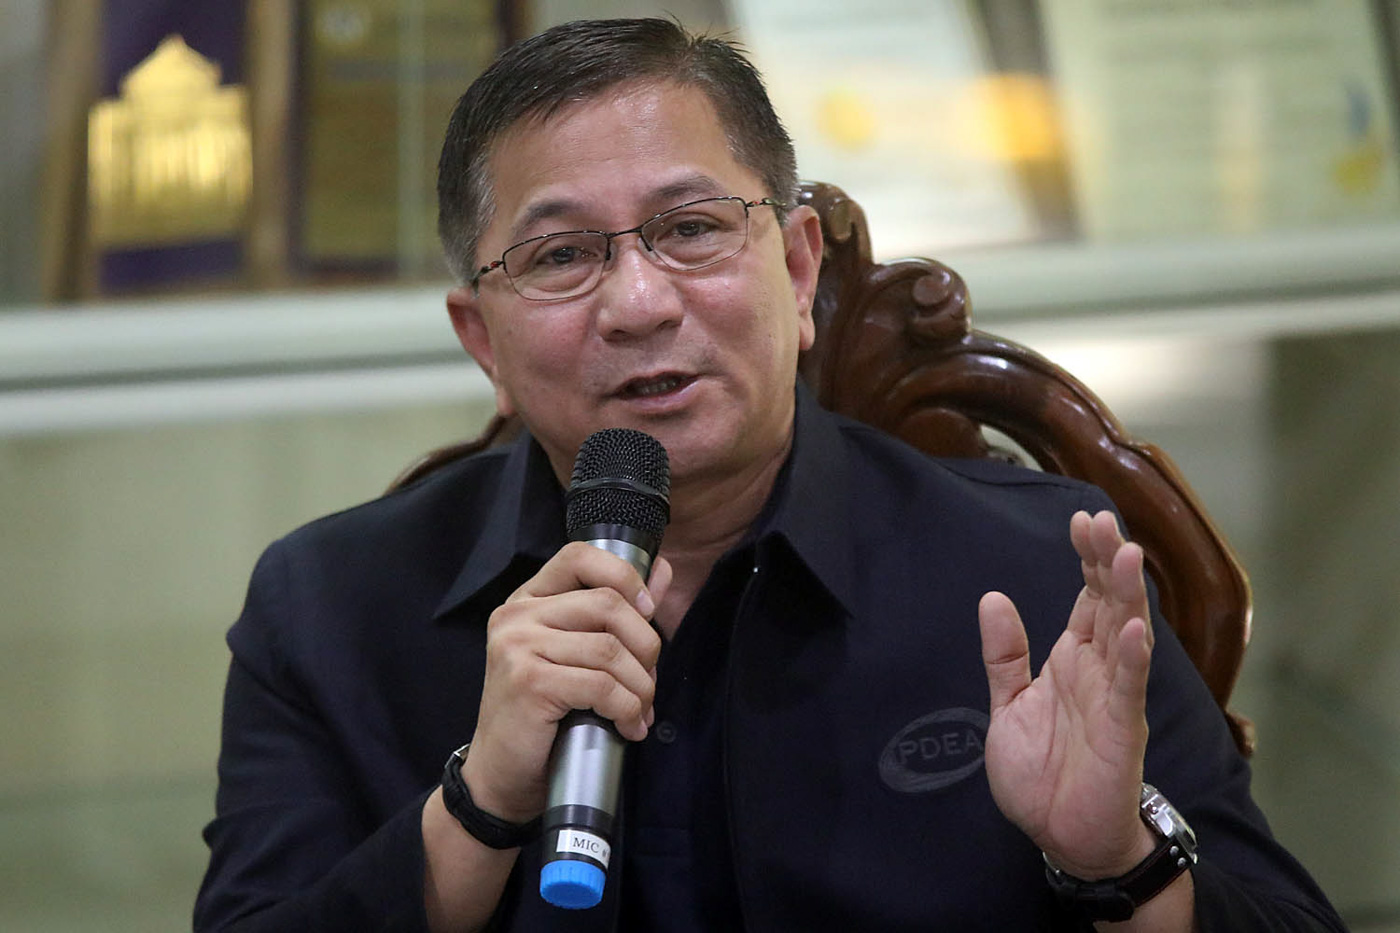 NOT AIRTIGHT. Philippine Drug Enforcement Agency chief Aaron Aquino during a press conference at the PDEA Headquarters in Quezon City on April 30, 2018. File photo by Darren Langit/Rappler